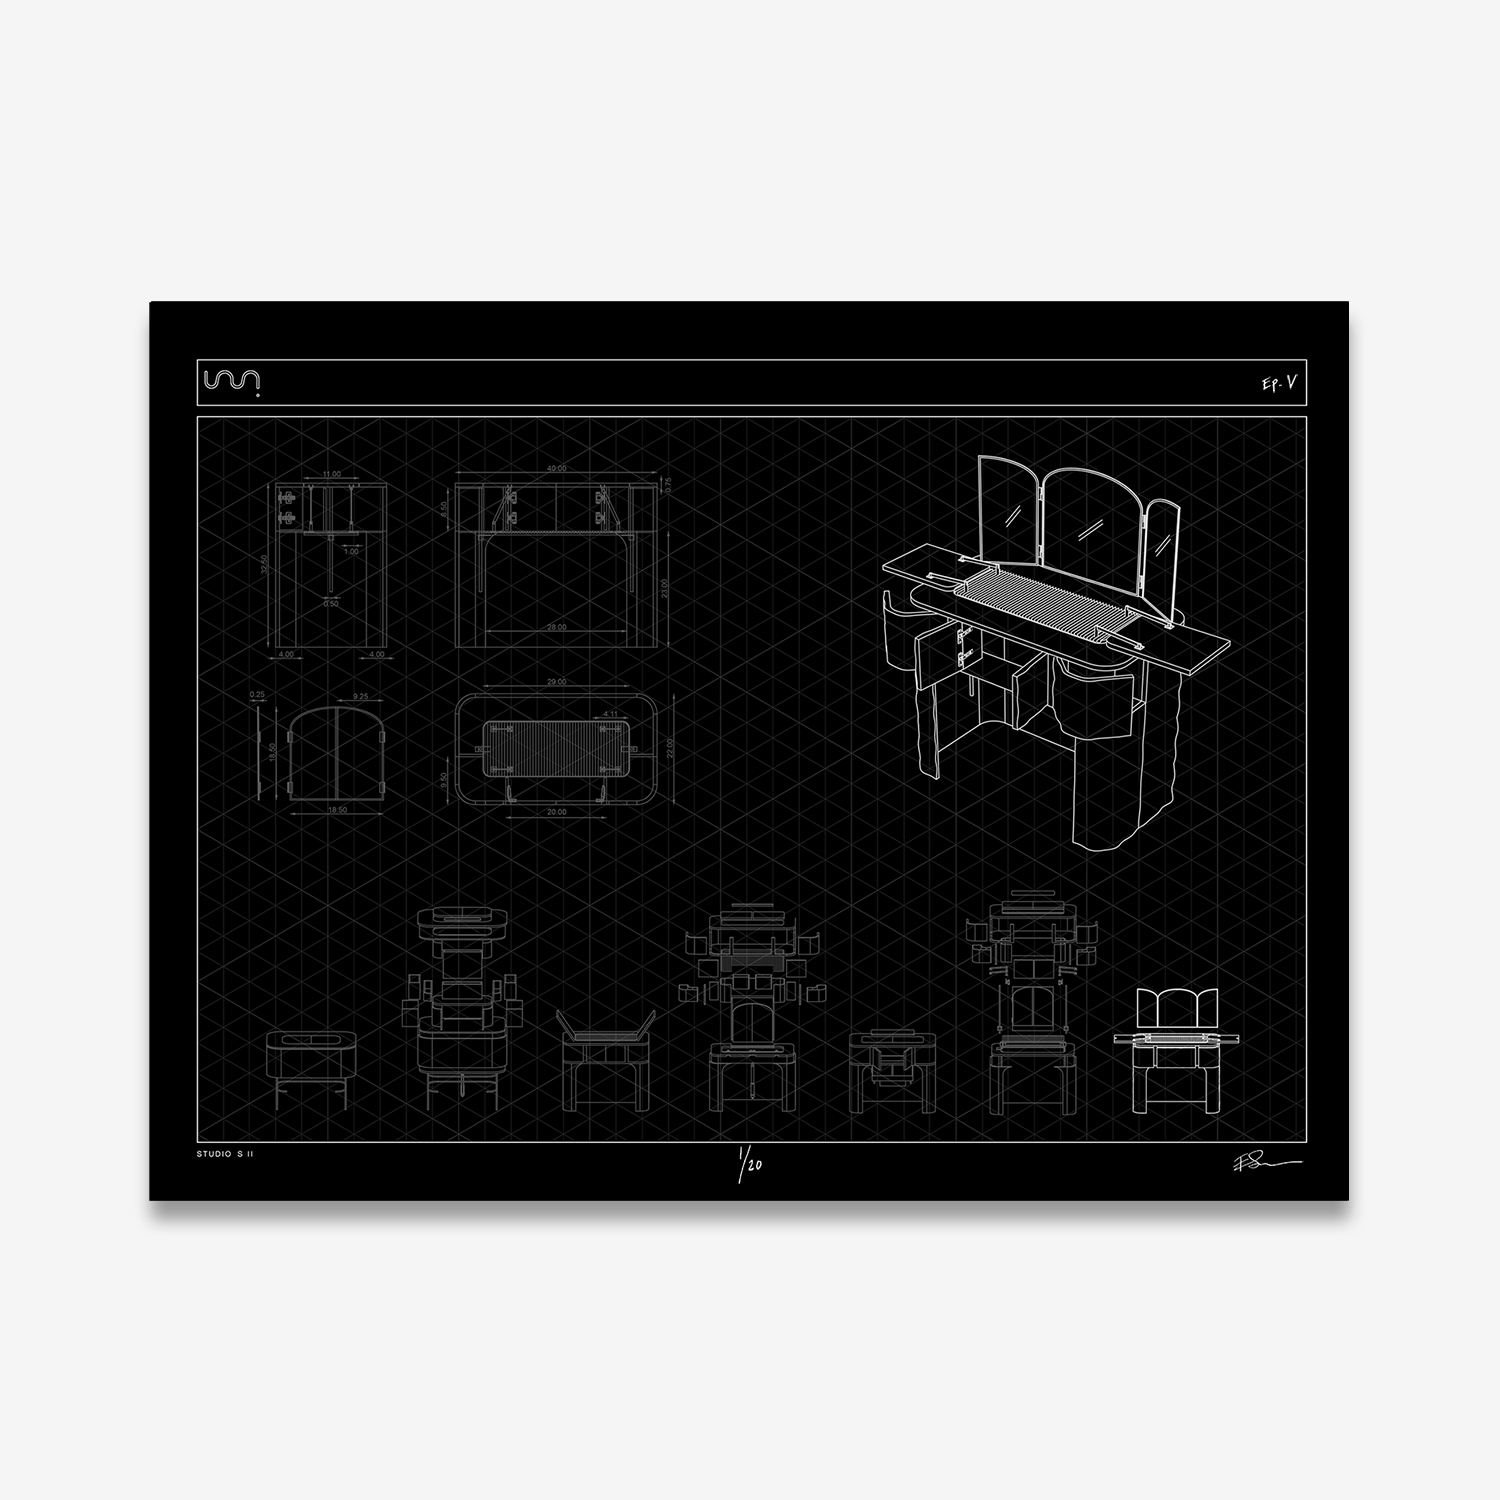 These limited edition screen prints illustrate the process behind each challenge on Ellen's Next Great Designer. Hand-printed in Brooklyn, NY. EP.5 yielded a vanity that was inspired by 16th century cabinets of curiosities and contemporary uses for them. The final piece was made from MDF, steel, and acrylic. Edition of 20; Signed by the artist